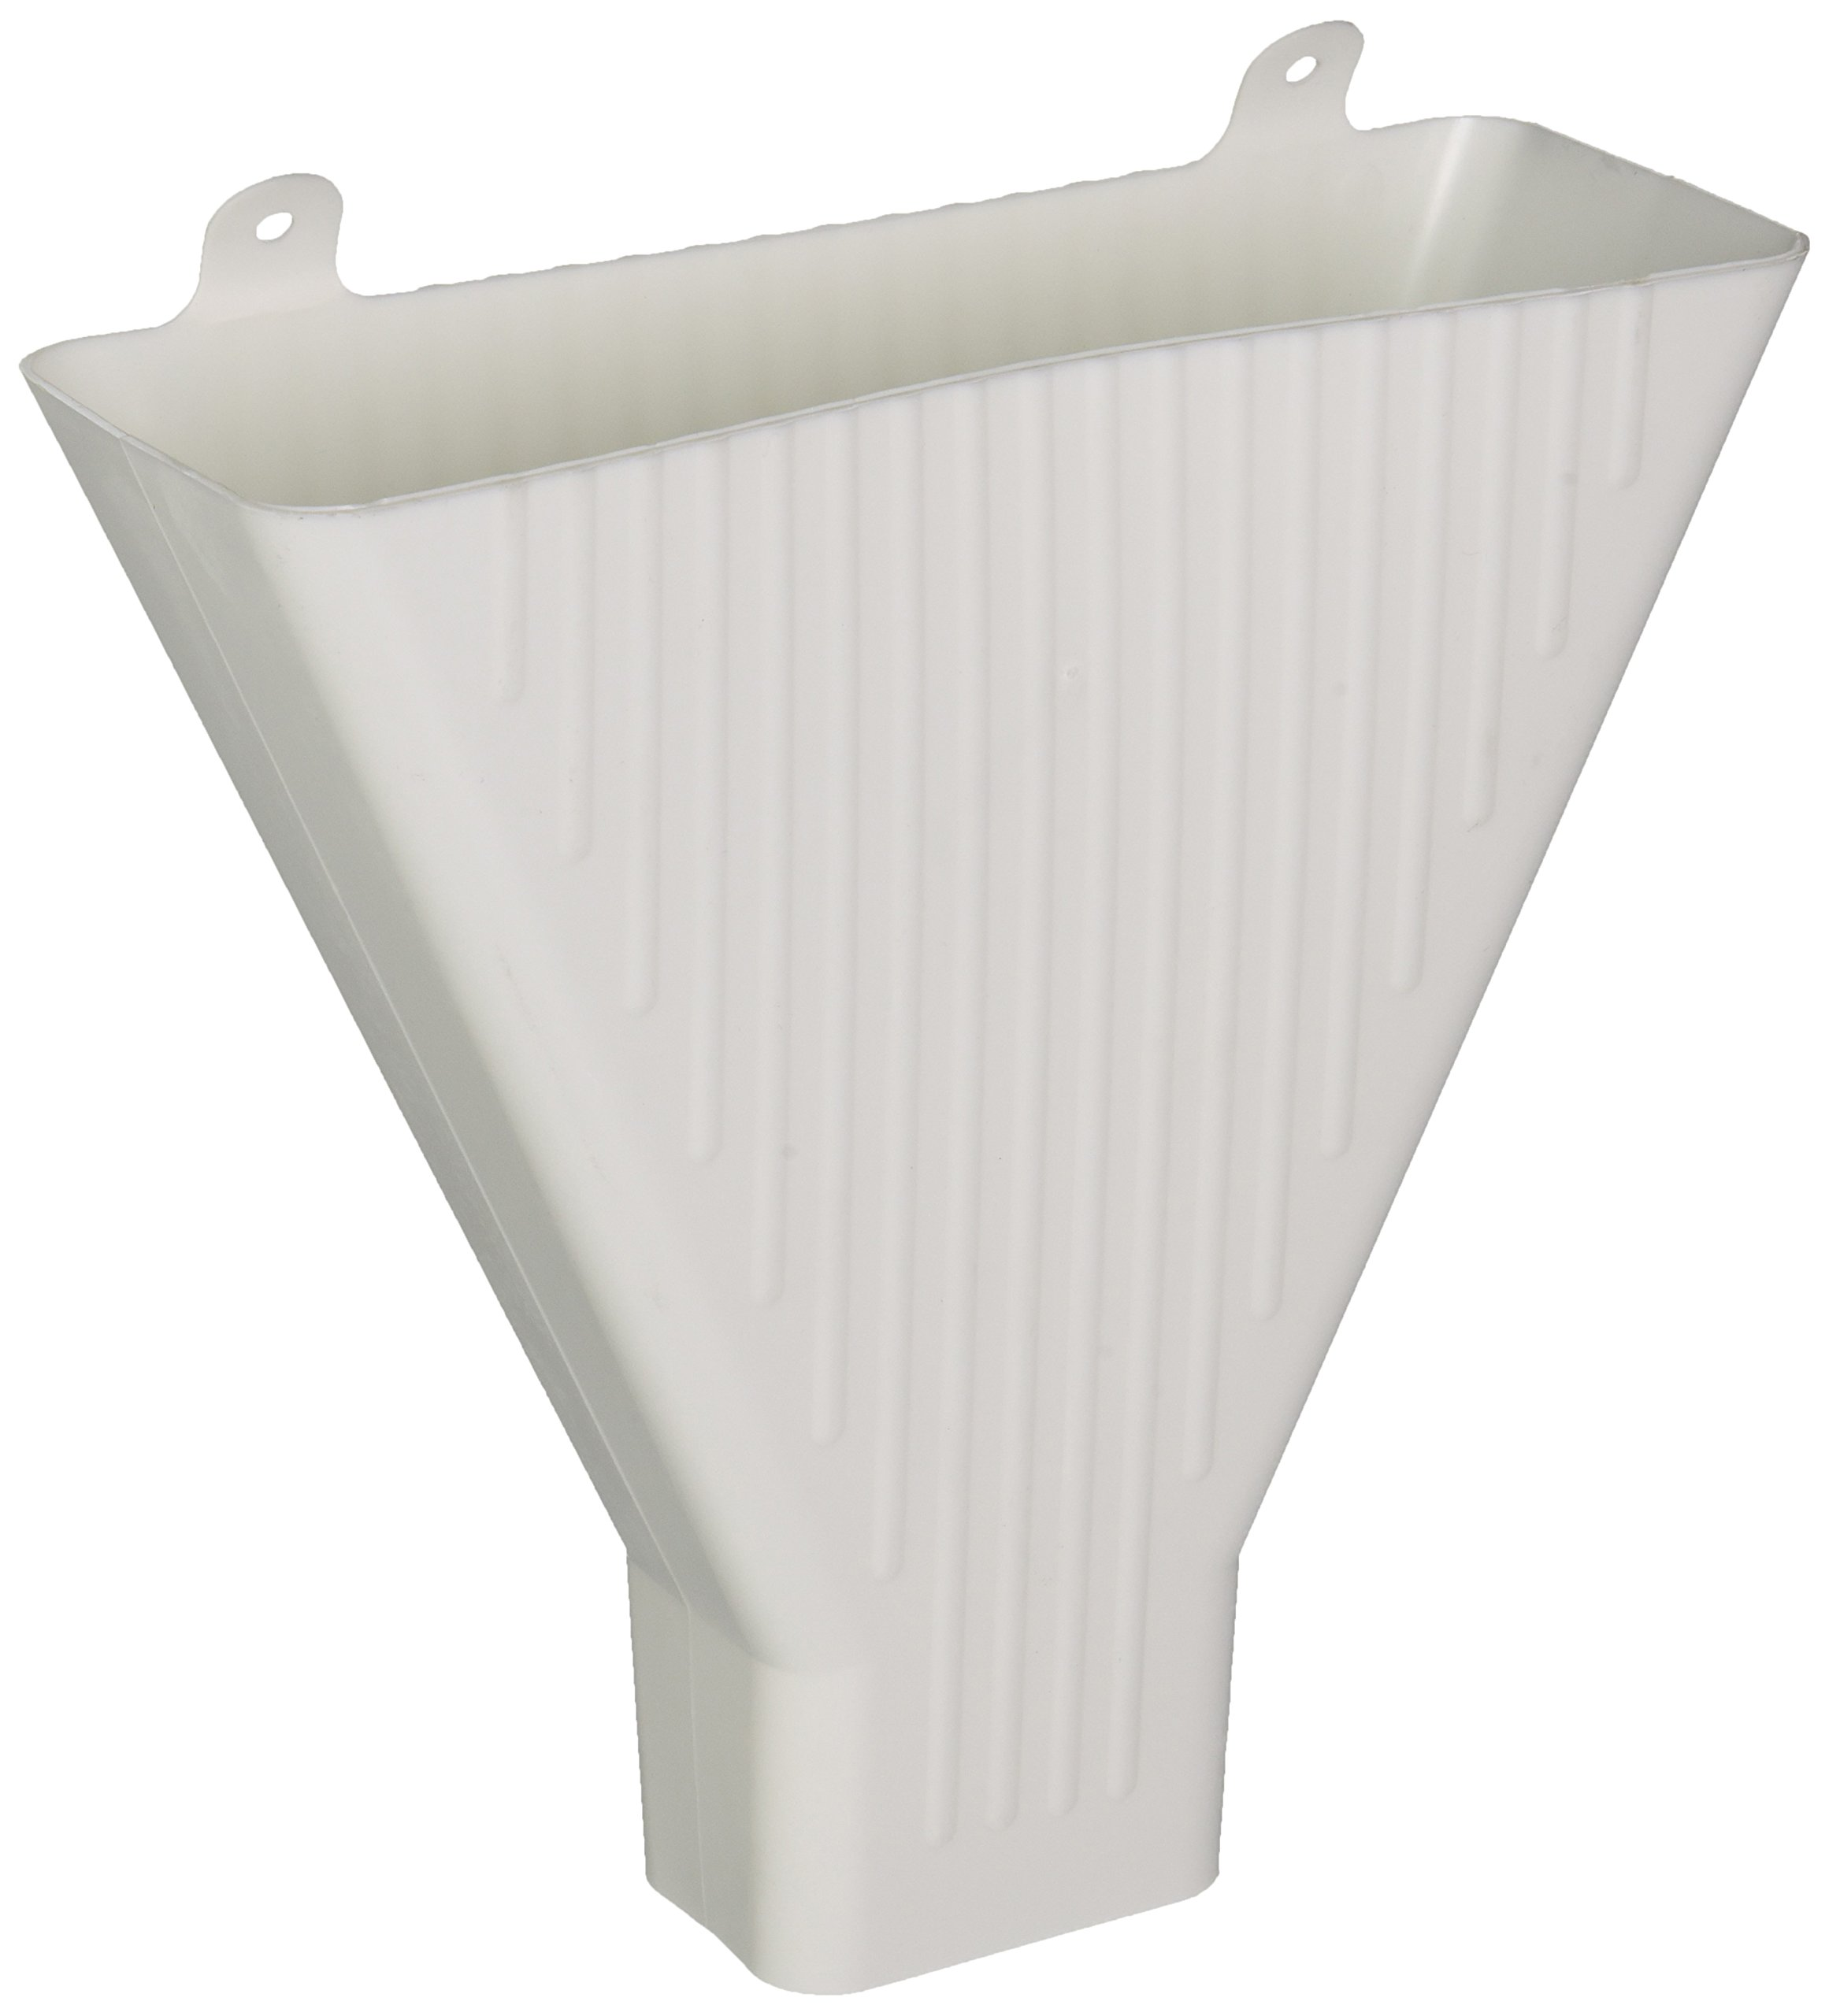 Amerimax Home Products 85208 Funnel For 2 x 3-In. Downspout, White Plastic by Amerimax Home Products